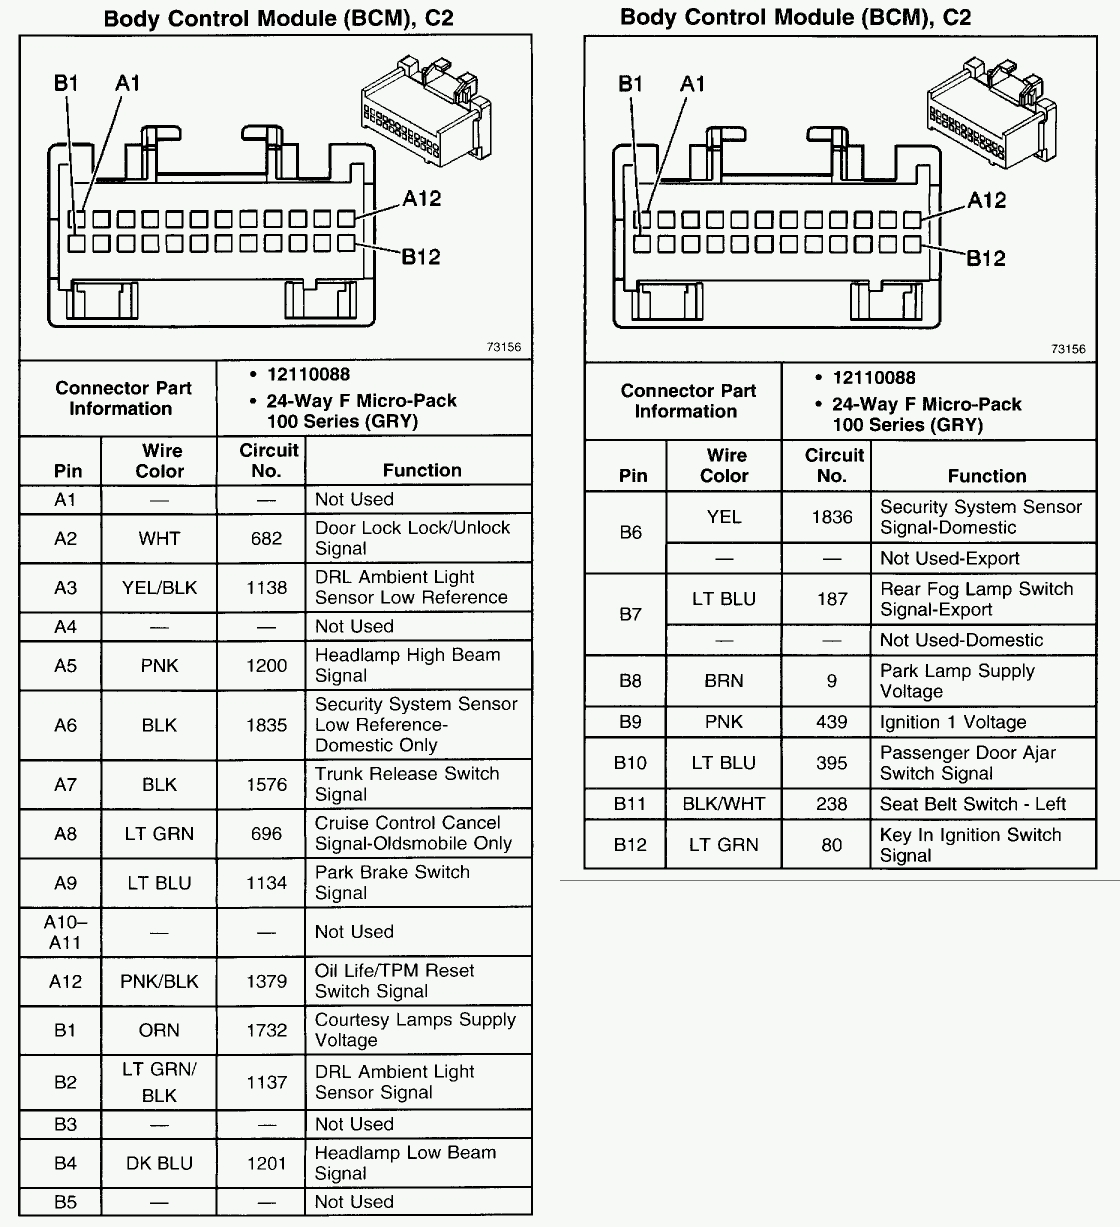 1999 pontiac grand am radio wiring diagram - wiring diagram system  side-locate-a - side-locate-a.ediliadesign.it  ediliadesign.it